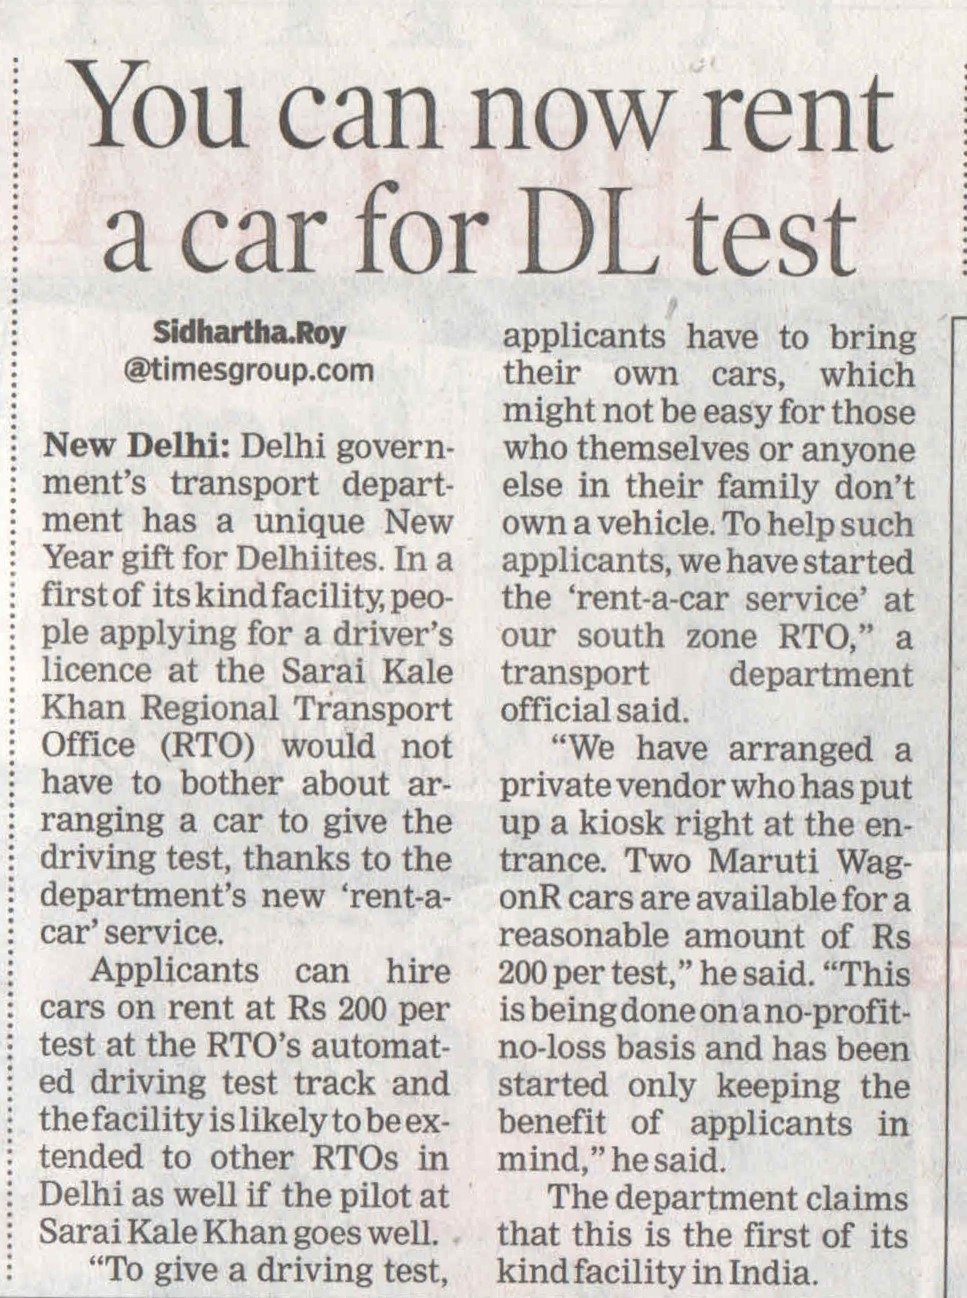 You can now rent a car for DL test